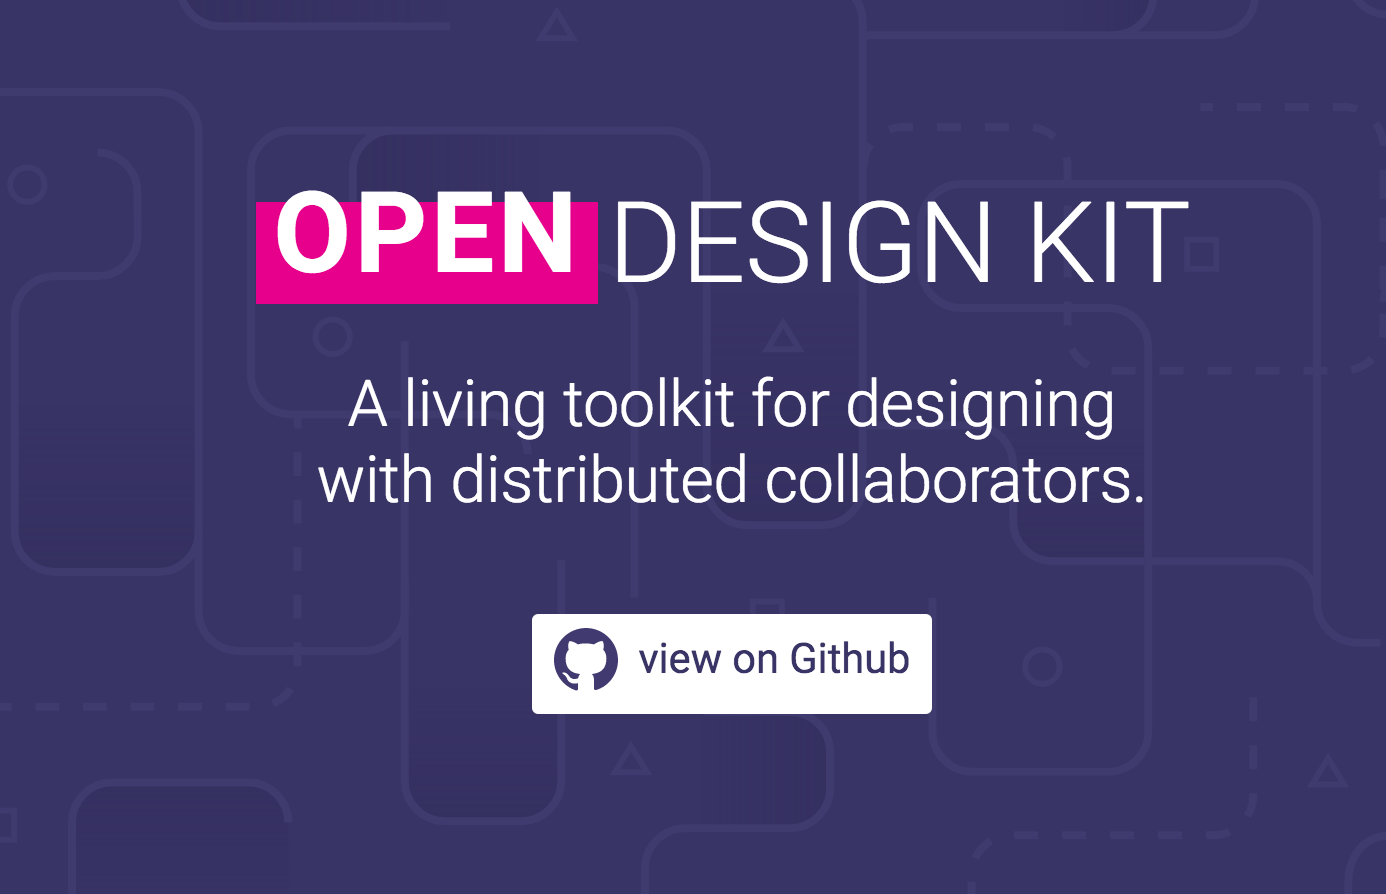 open design kit logo image